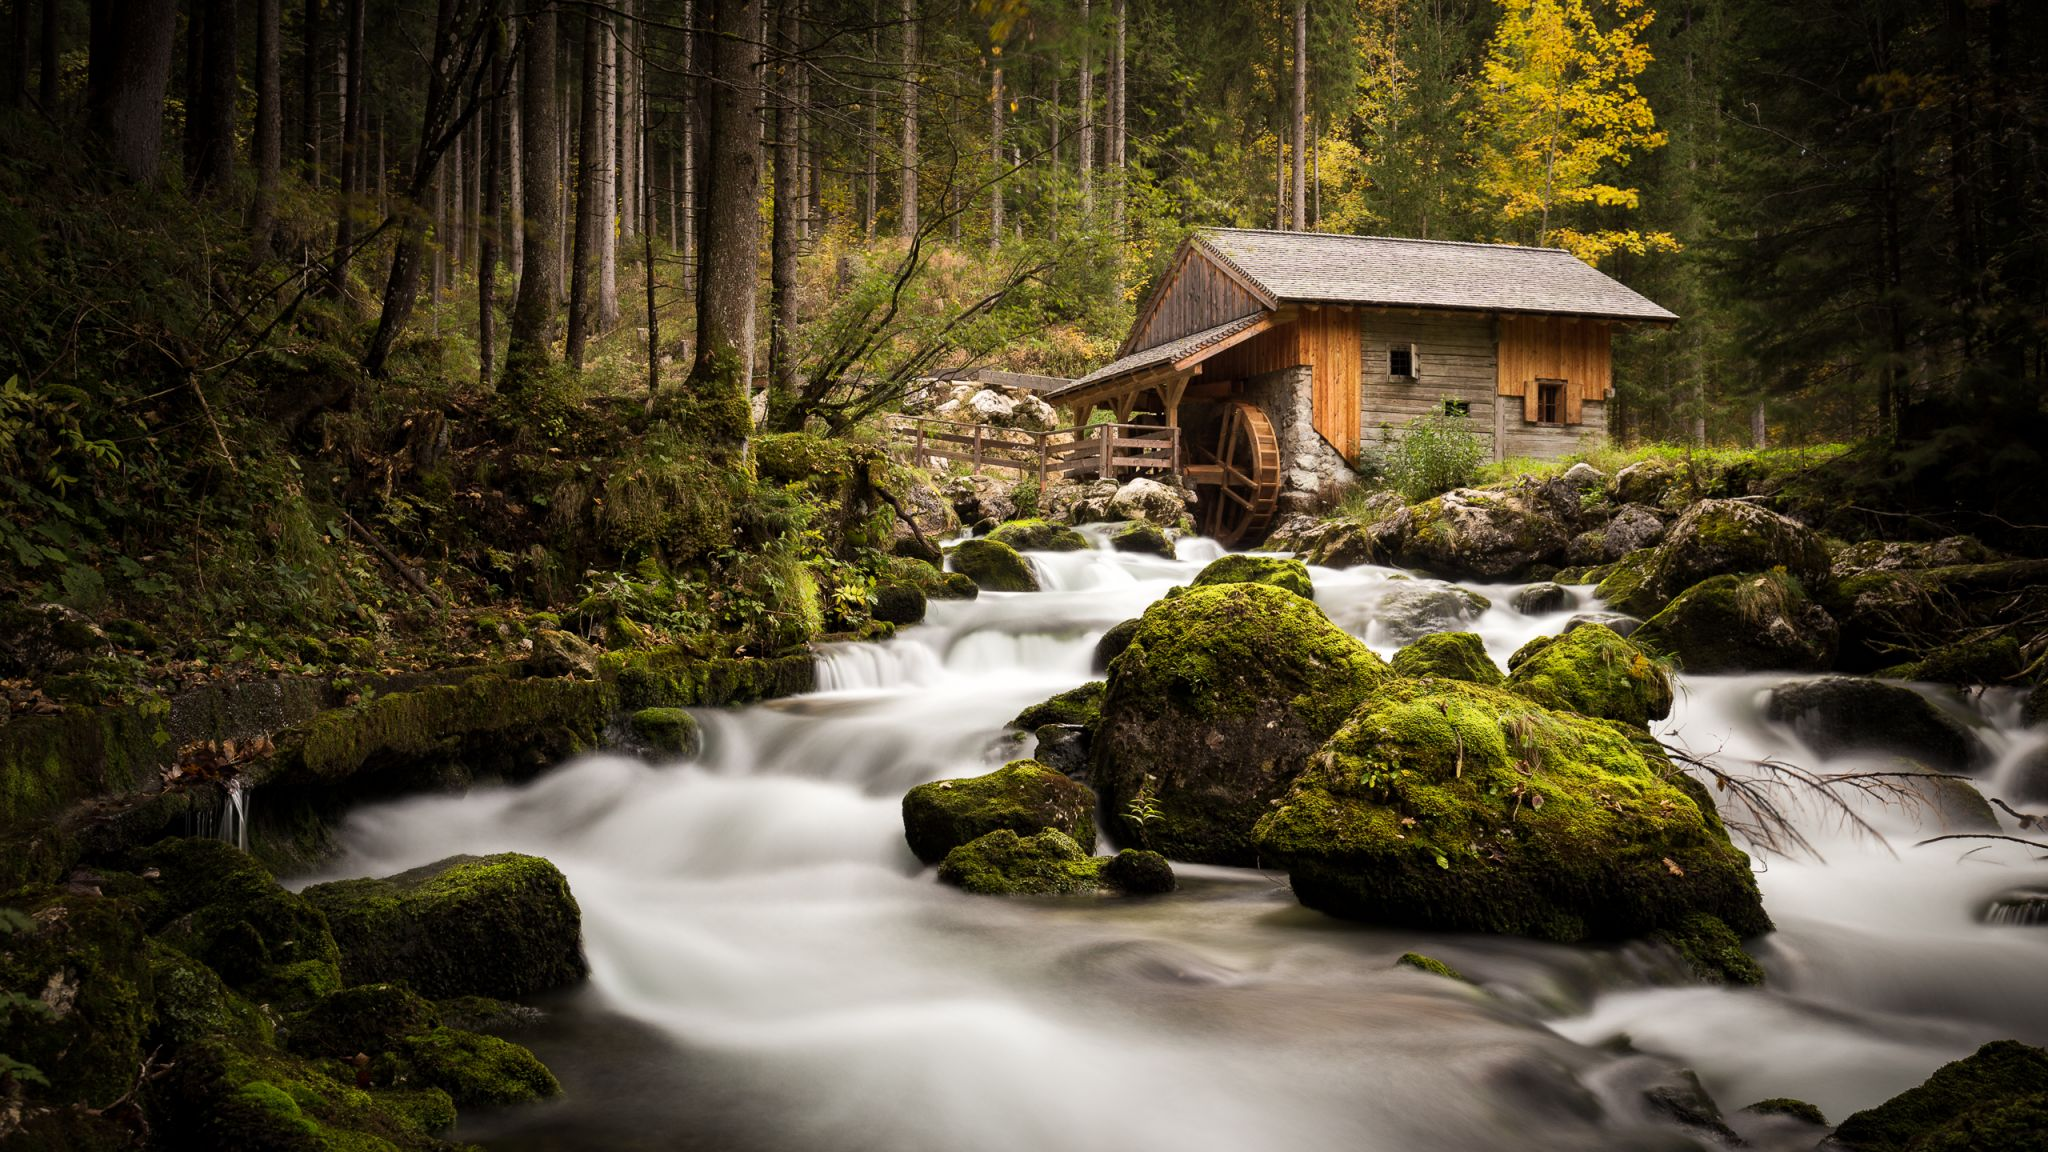 The mill of Golling, Austria